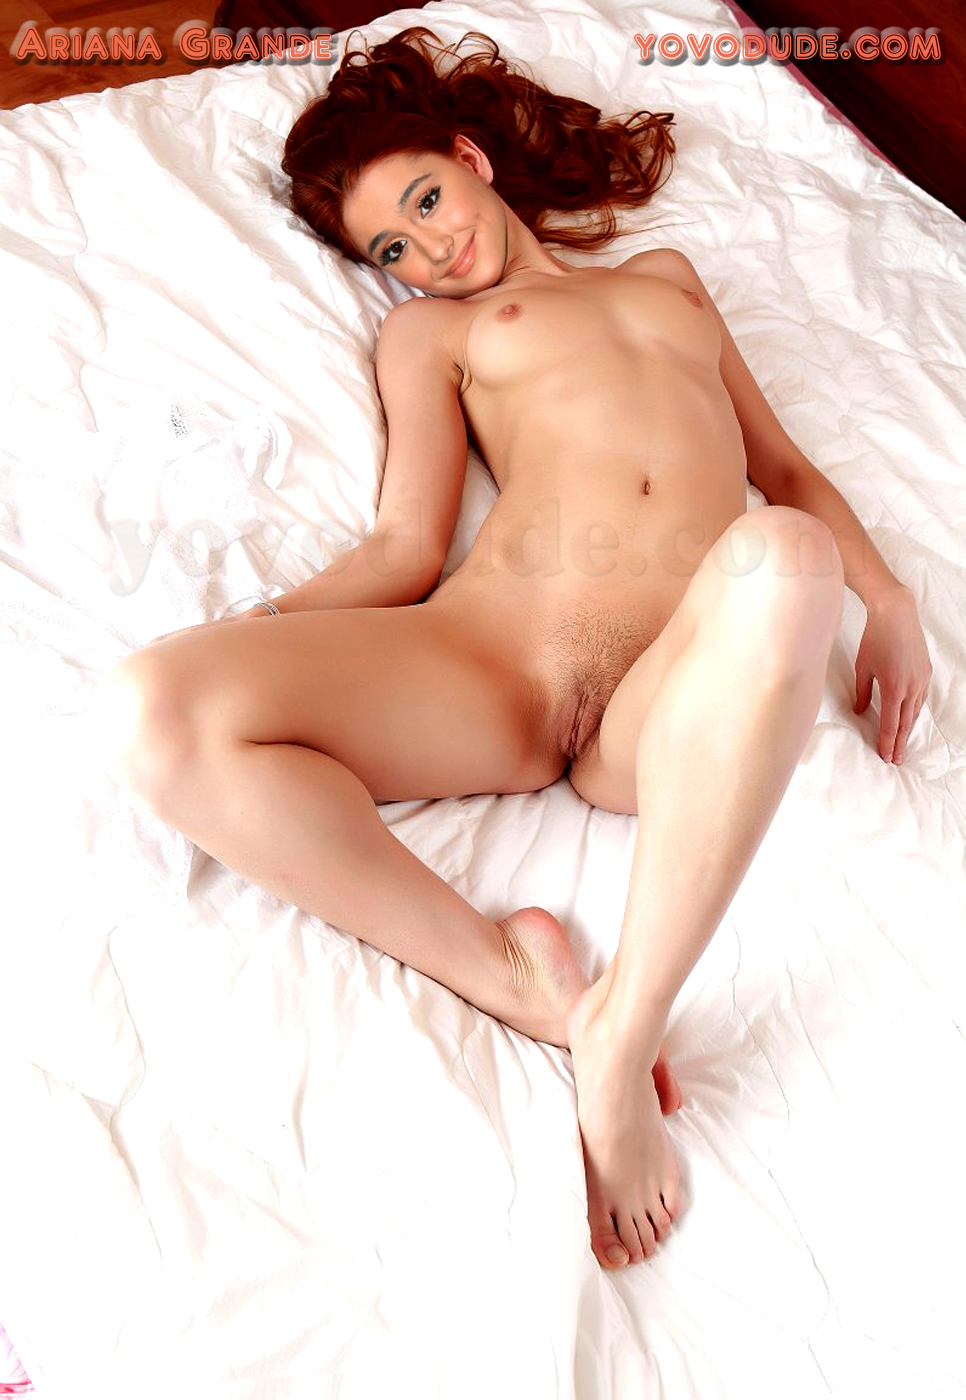 Ariana grande fucked in a bed fake 9